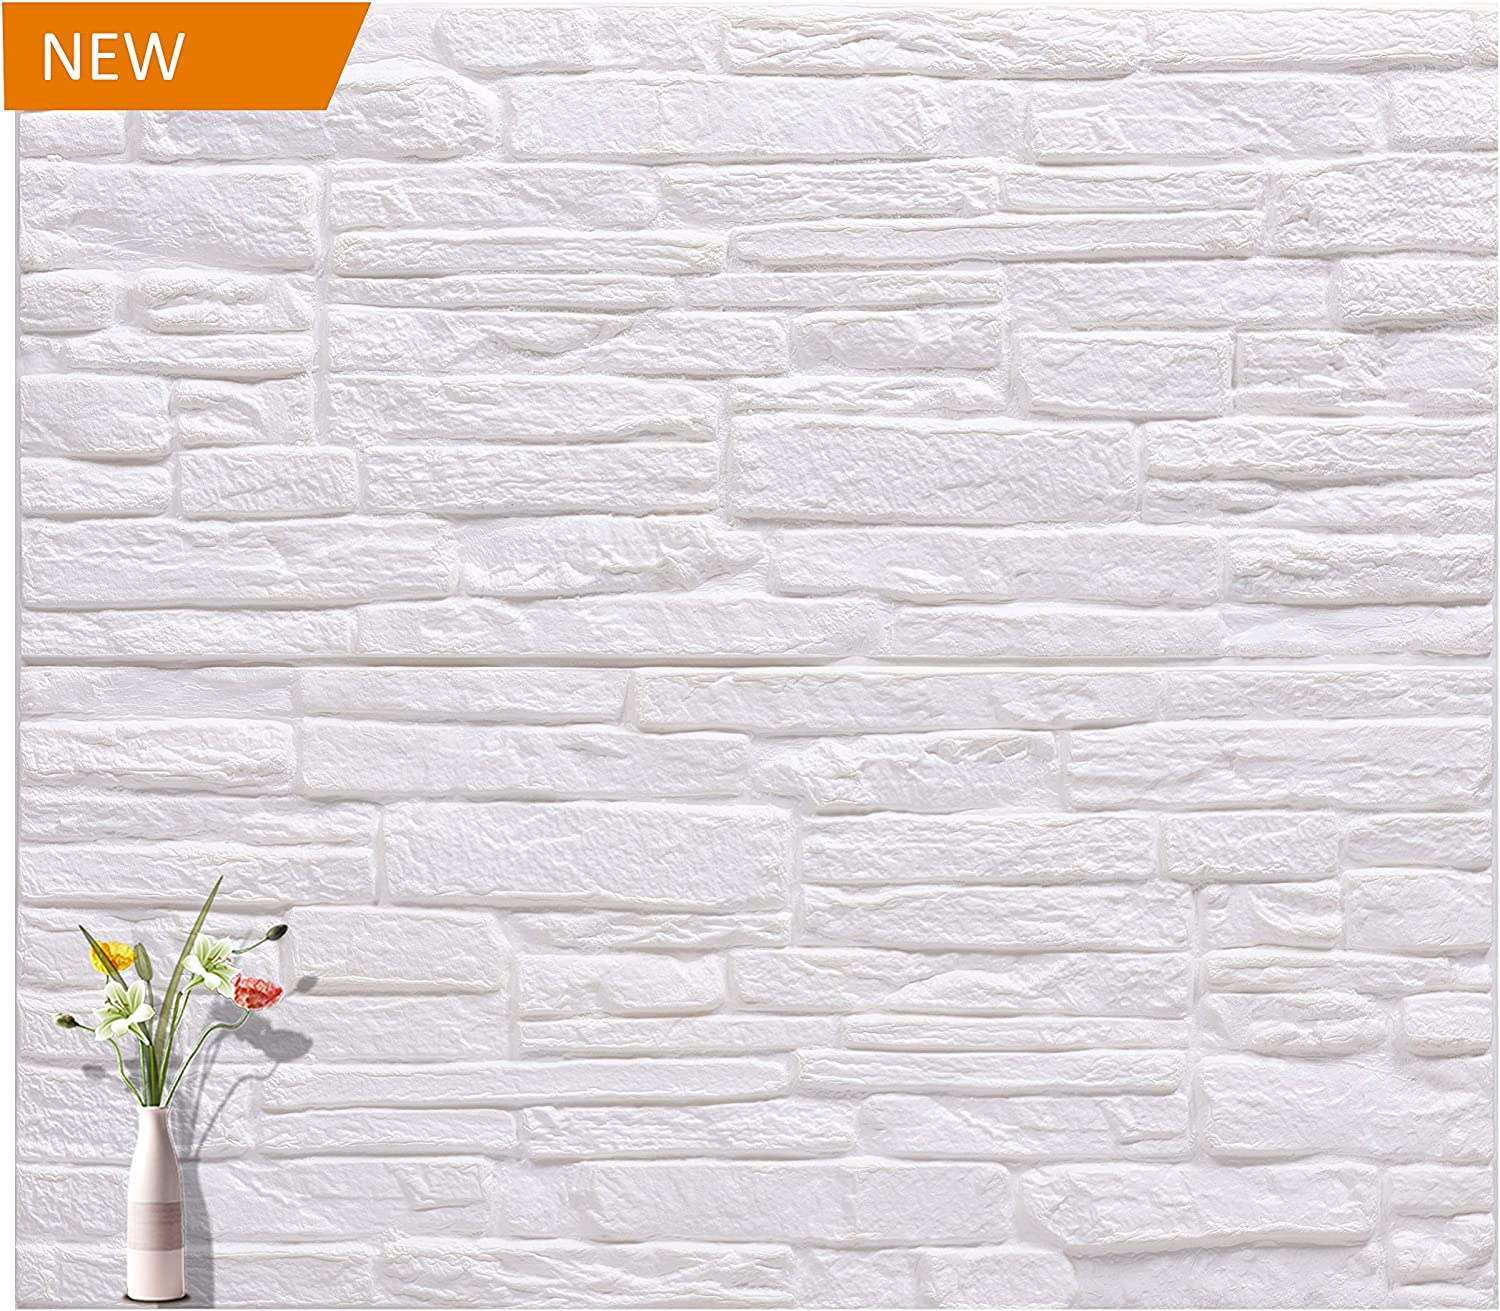 amerlife 3d wallpaper rustic brick wall panel self adhesive stacked stone tiles half inch thickness soft pe foam wallpaper white 27 56 l x 23 62 w